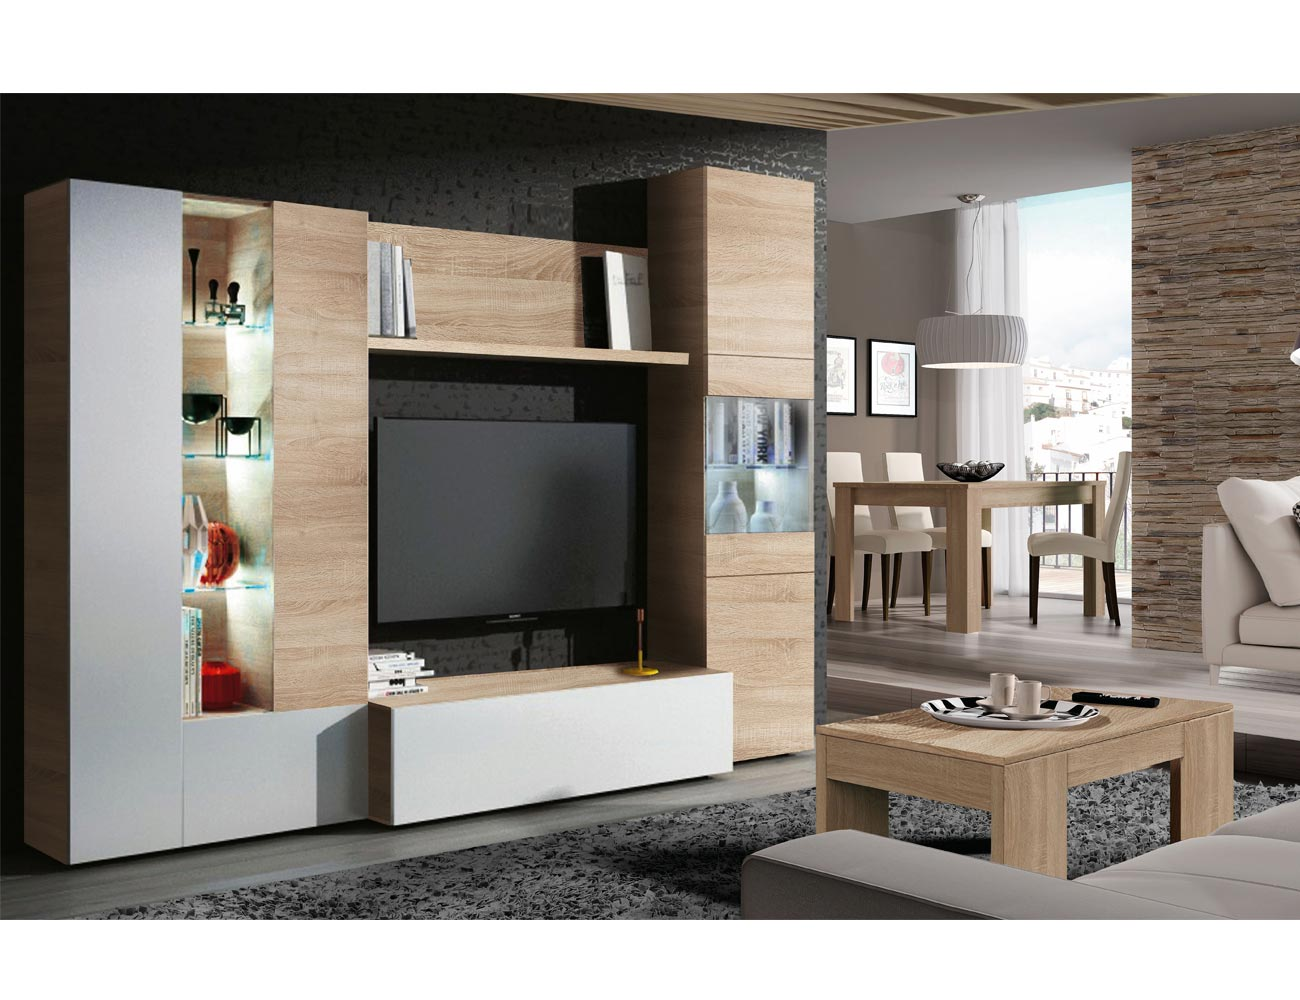 Mueble de sal n comedor modular en blanco con roble y for Modulos salon blanco